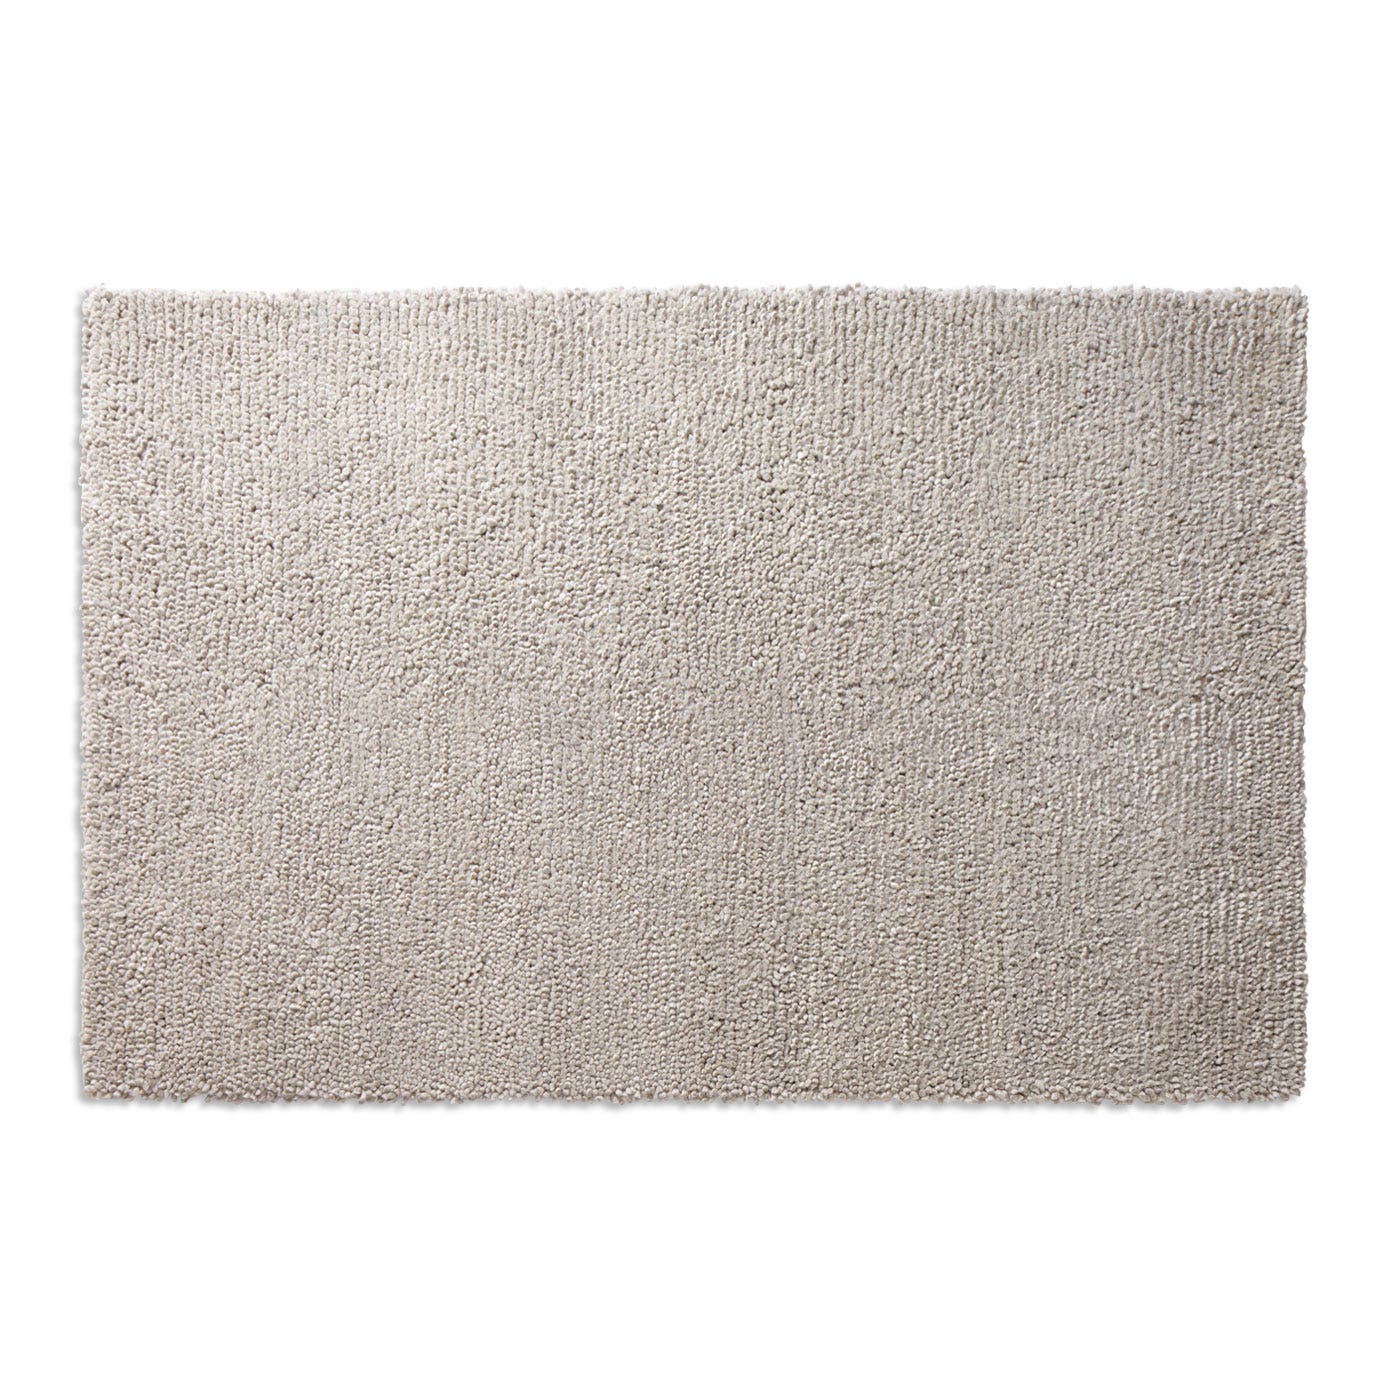 previous image cush 6u0027 x 9u0027 rug heathered